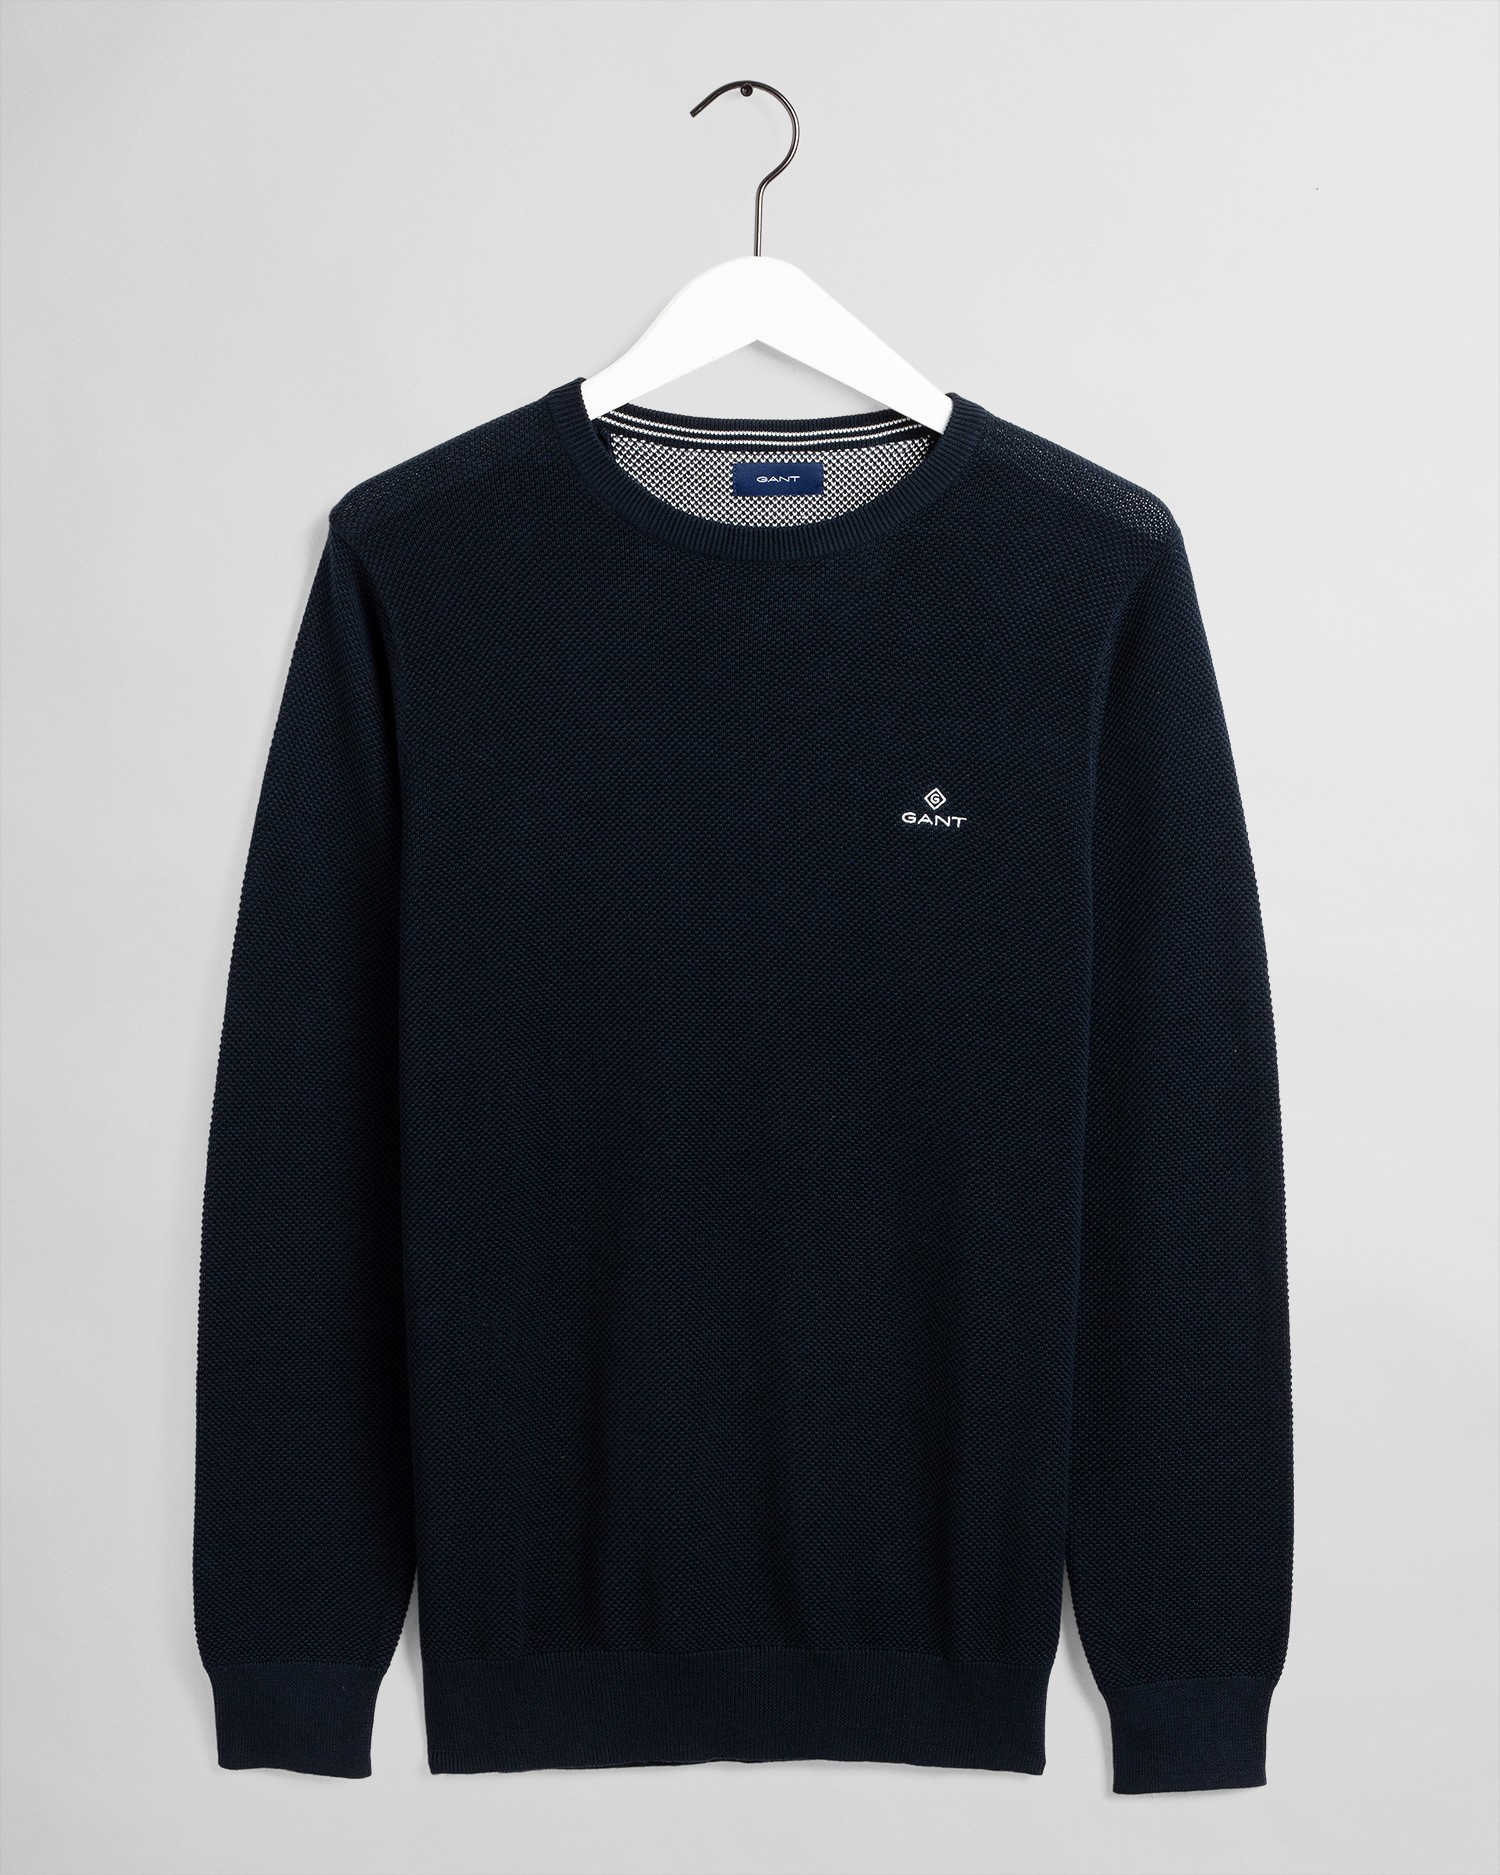 GANT Men's Cotton Pique Crew Sweater - 8030521